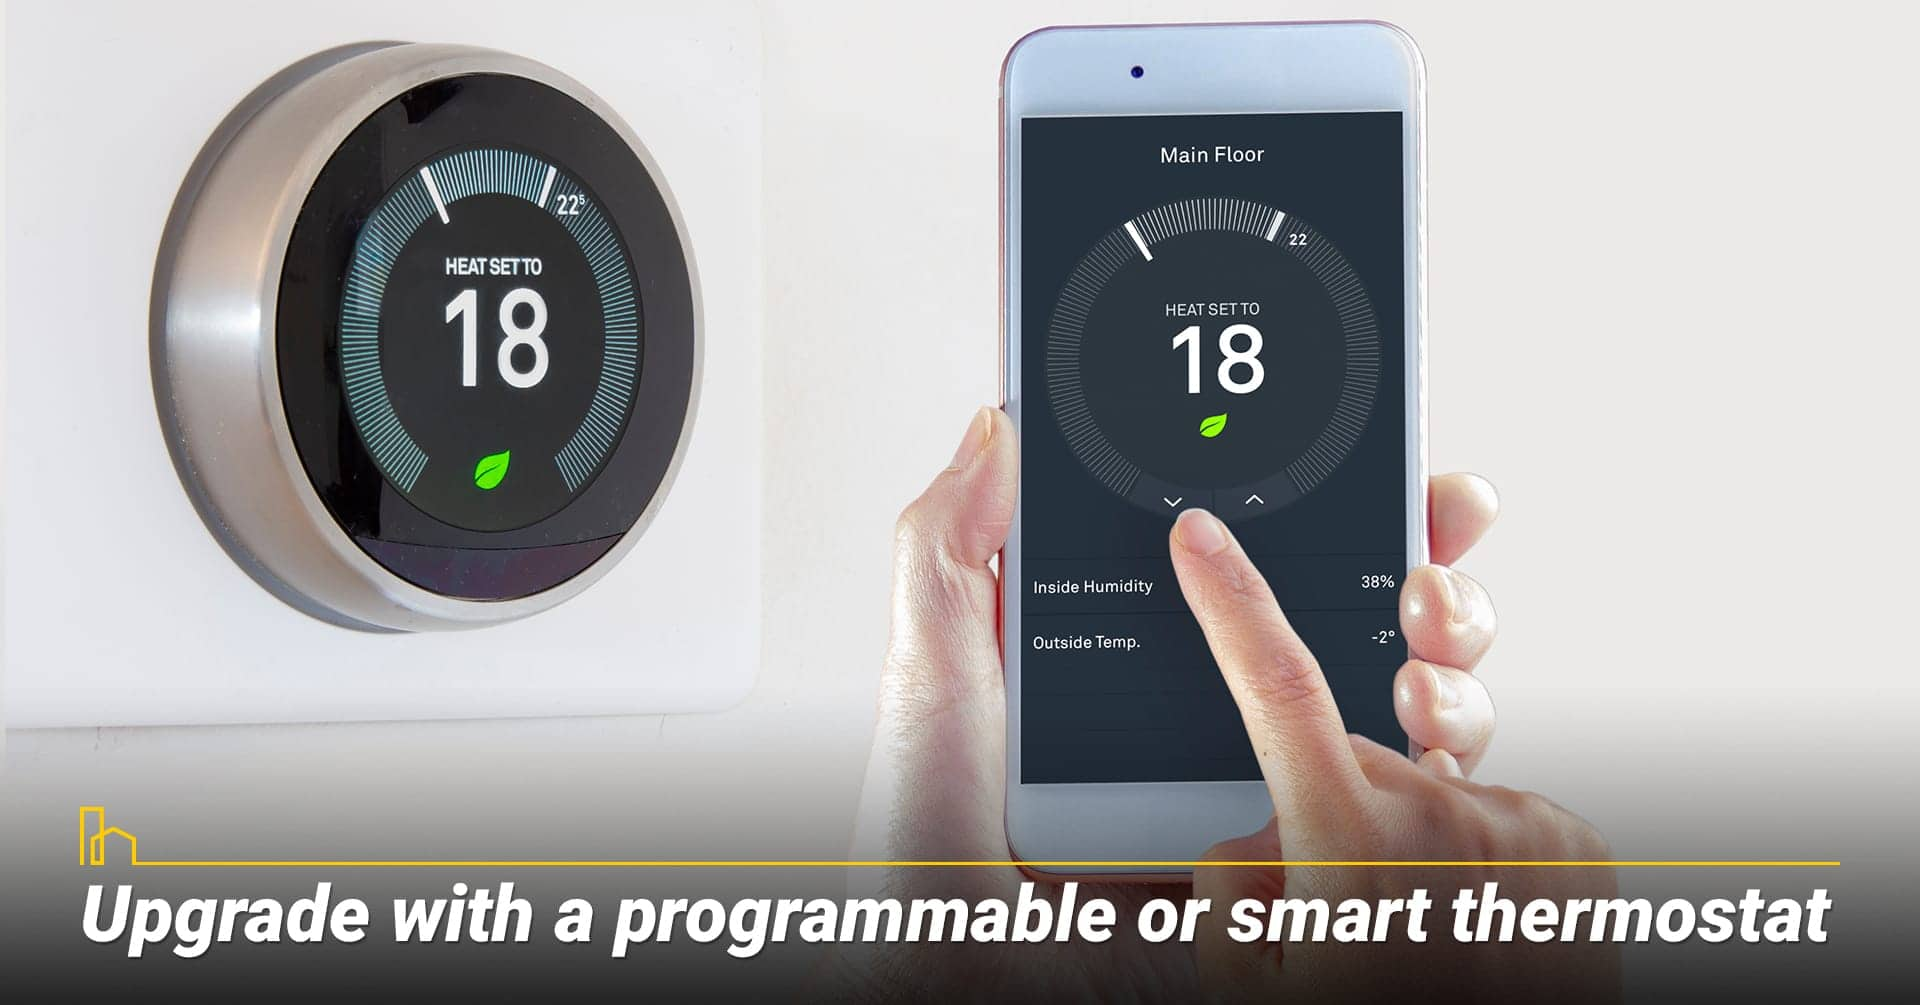 Upgrade with a programmable or smart thermostat, use smart thermostat